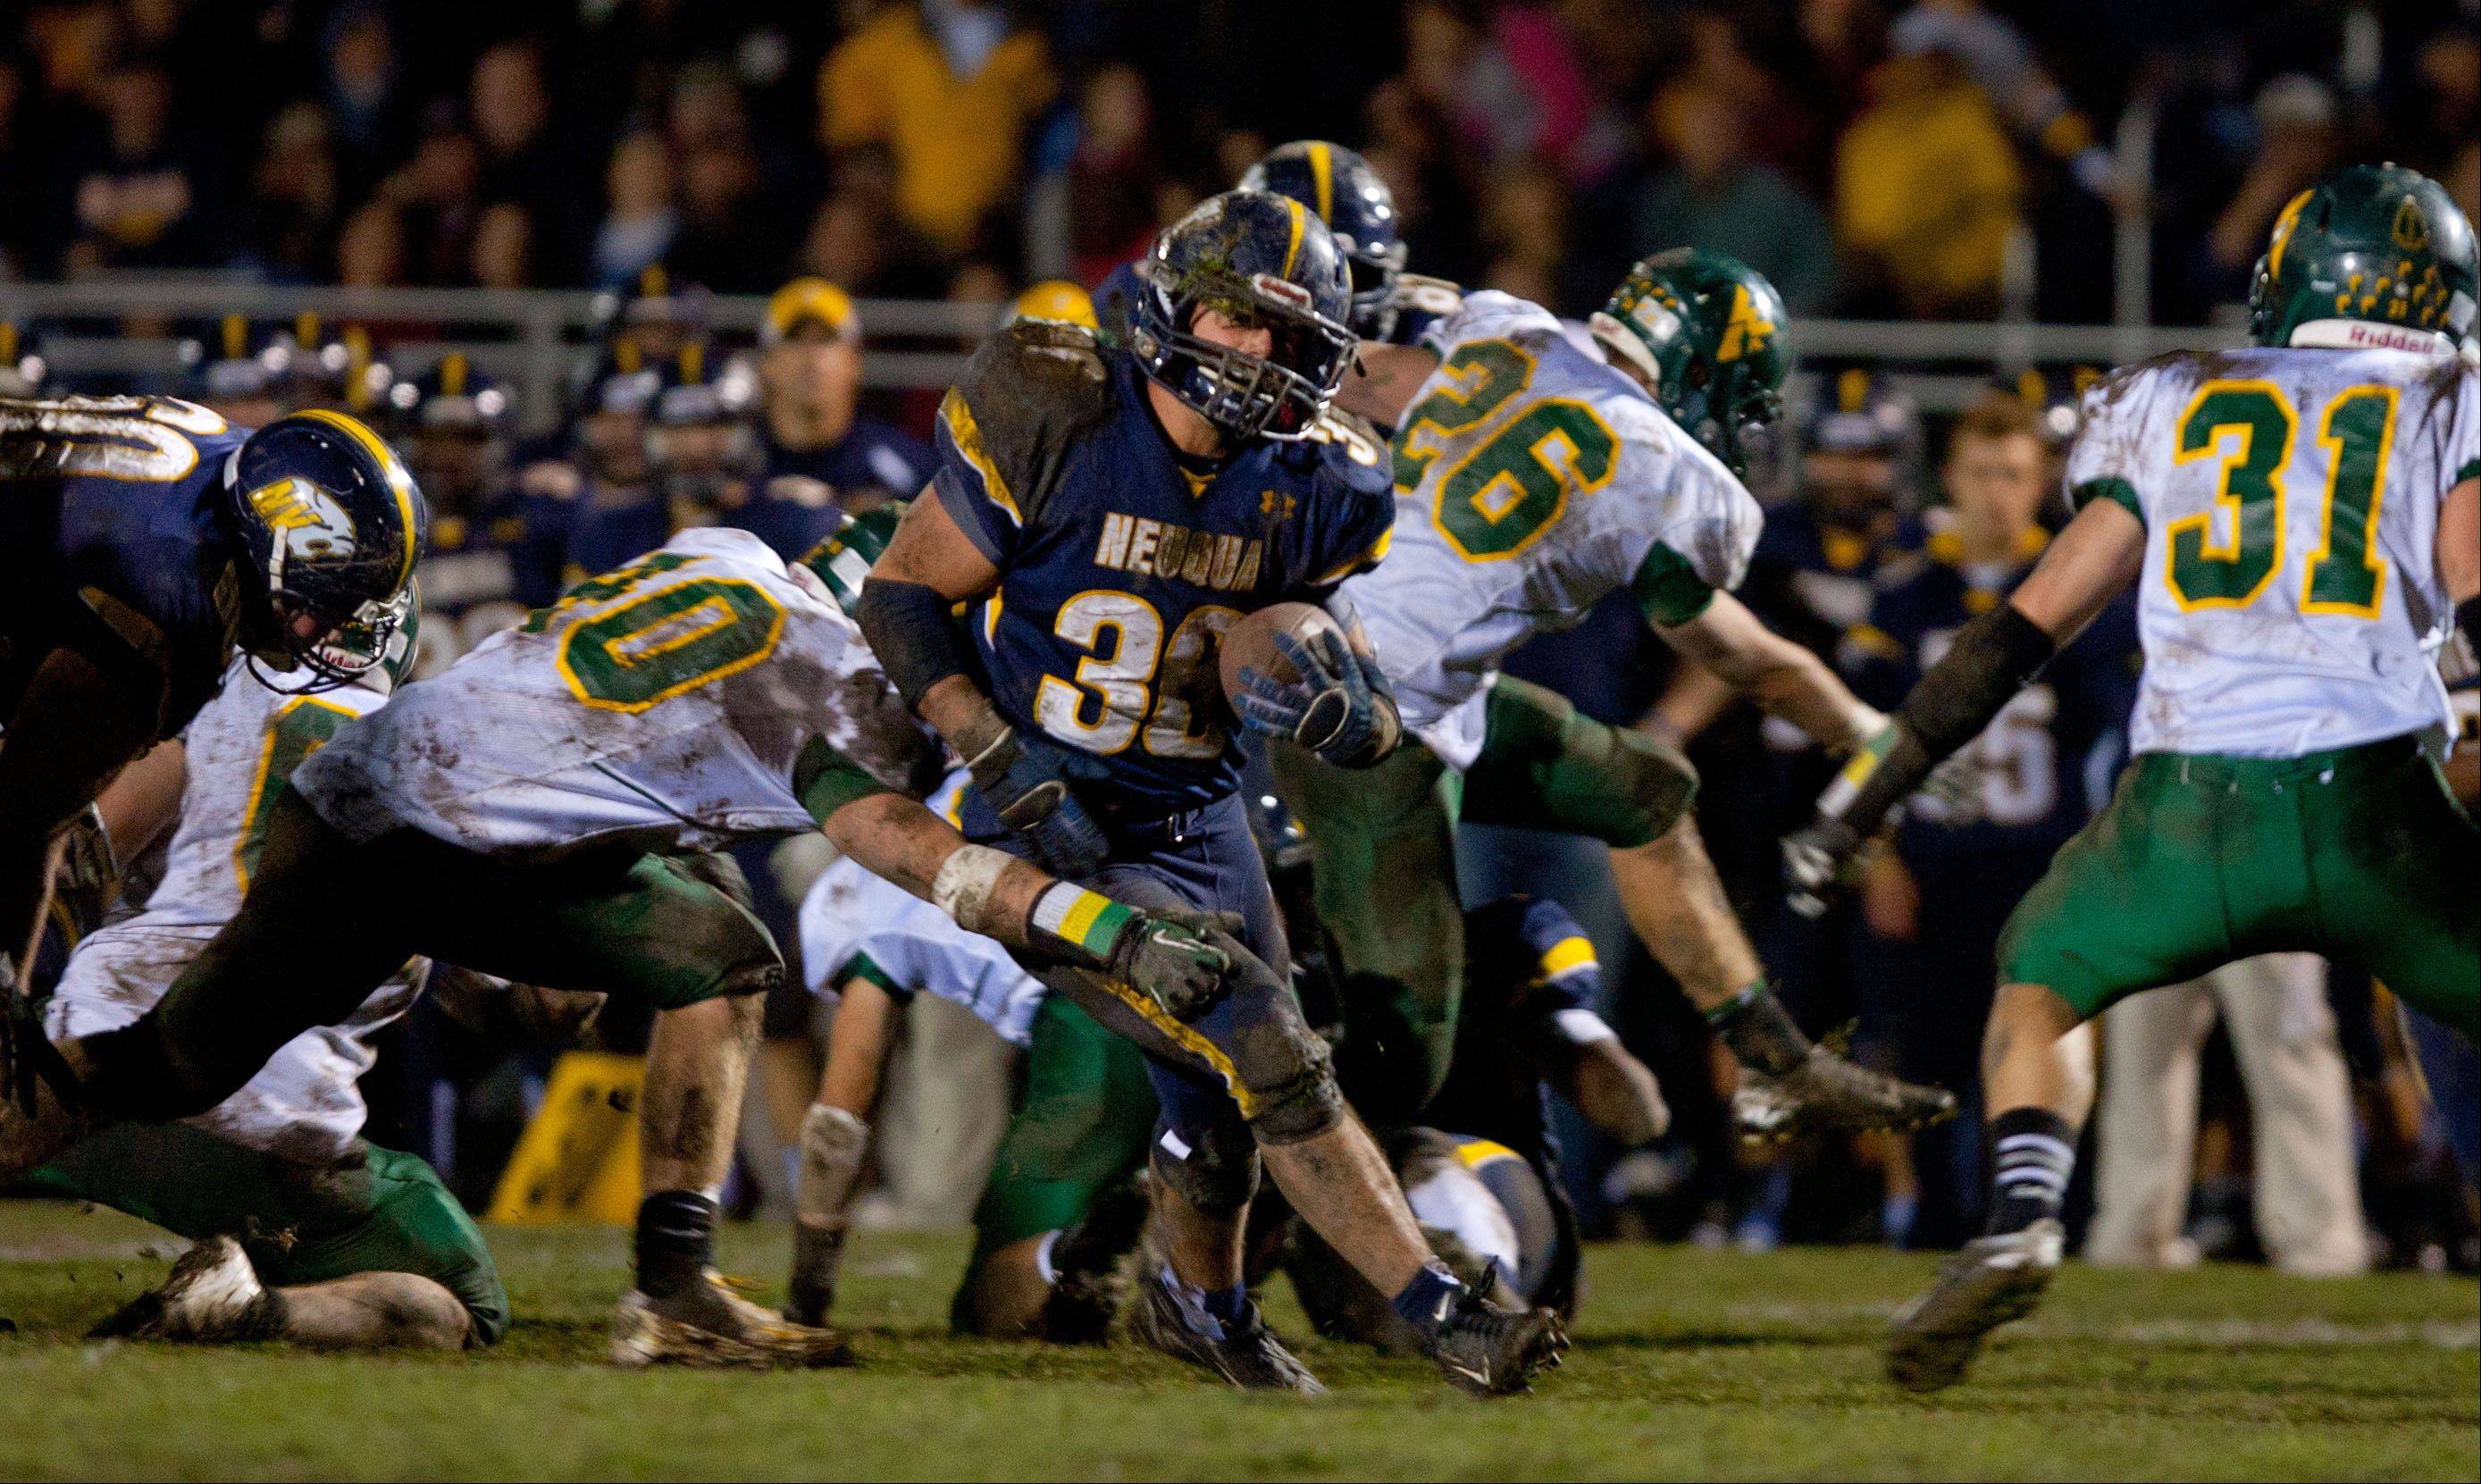 Neuqua Valley's Joey Rhattigan, 36, blasts through the Waubonsie Valley defense scoring his second of three touchdowns.